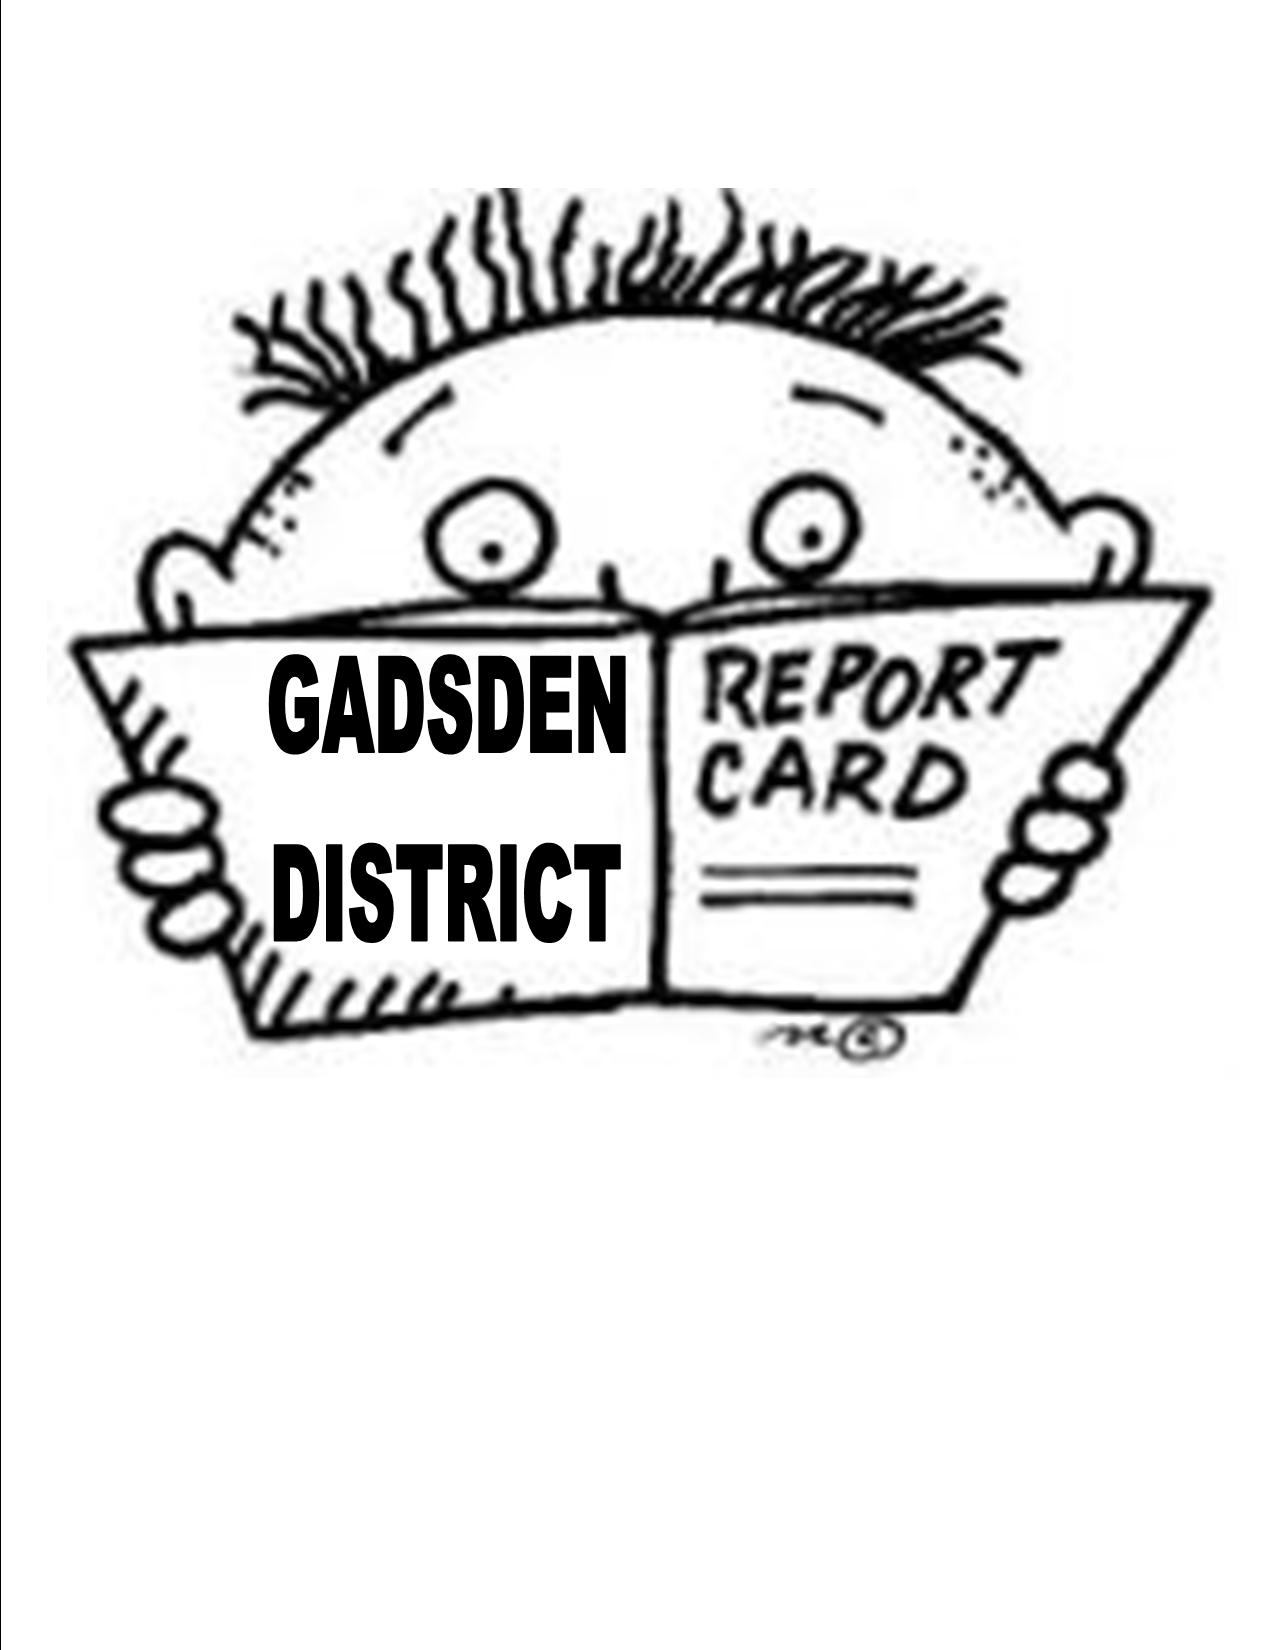 gadsden county middle eastern singles Gadsden county public schools sign up step 1 create an account you will need to create an account with a username and password when you first begin.